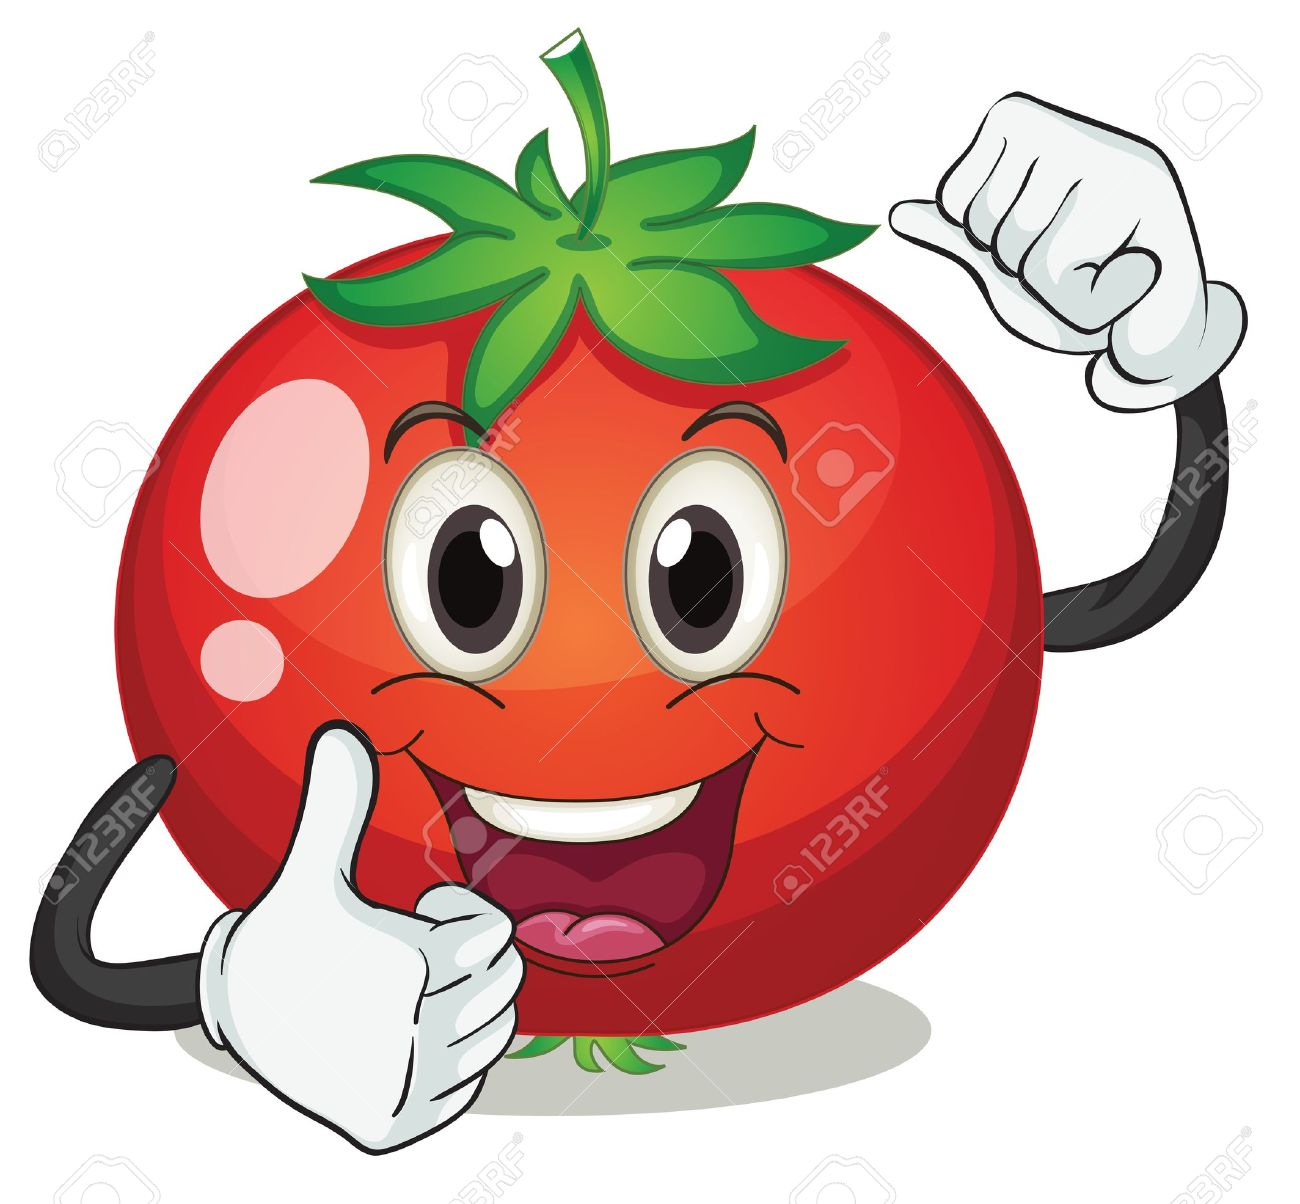 Clipart Tomato Images & Stock Pictures. Royalty Free Clipart ...